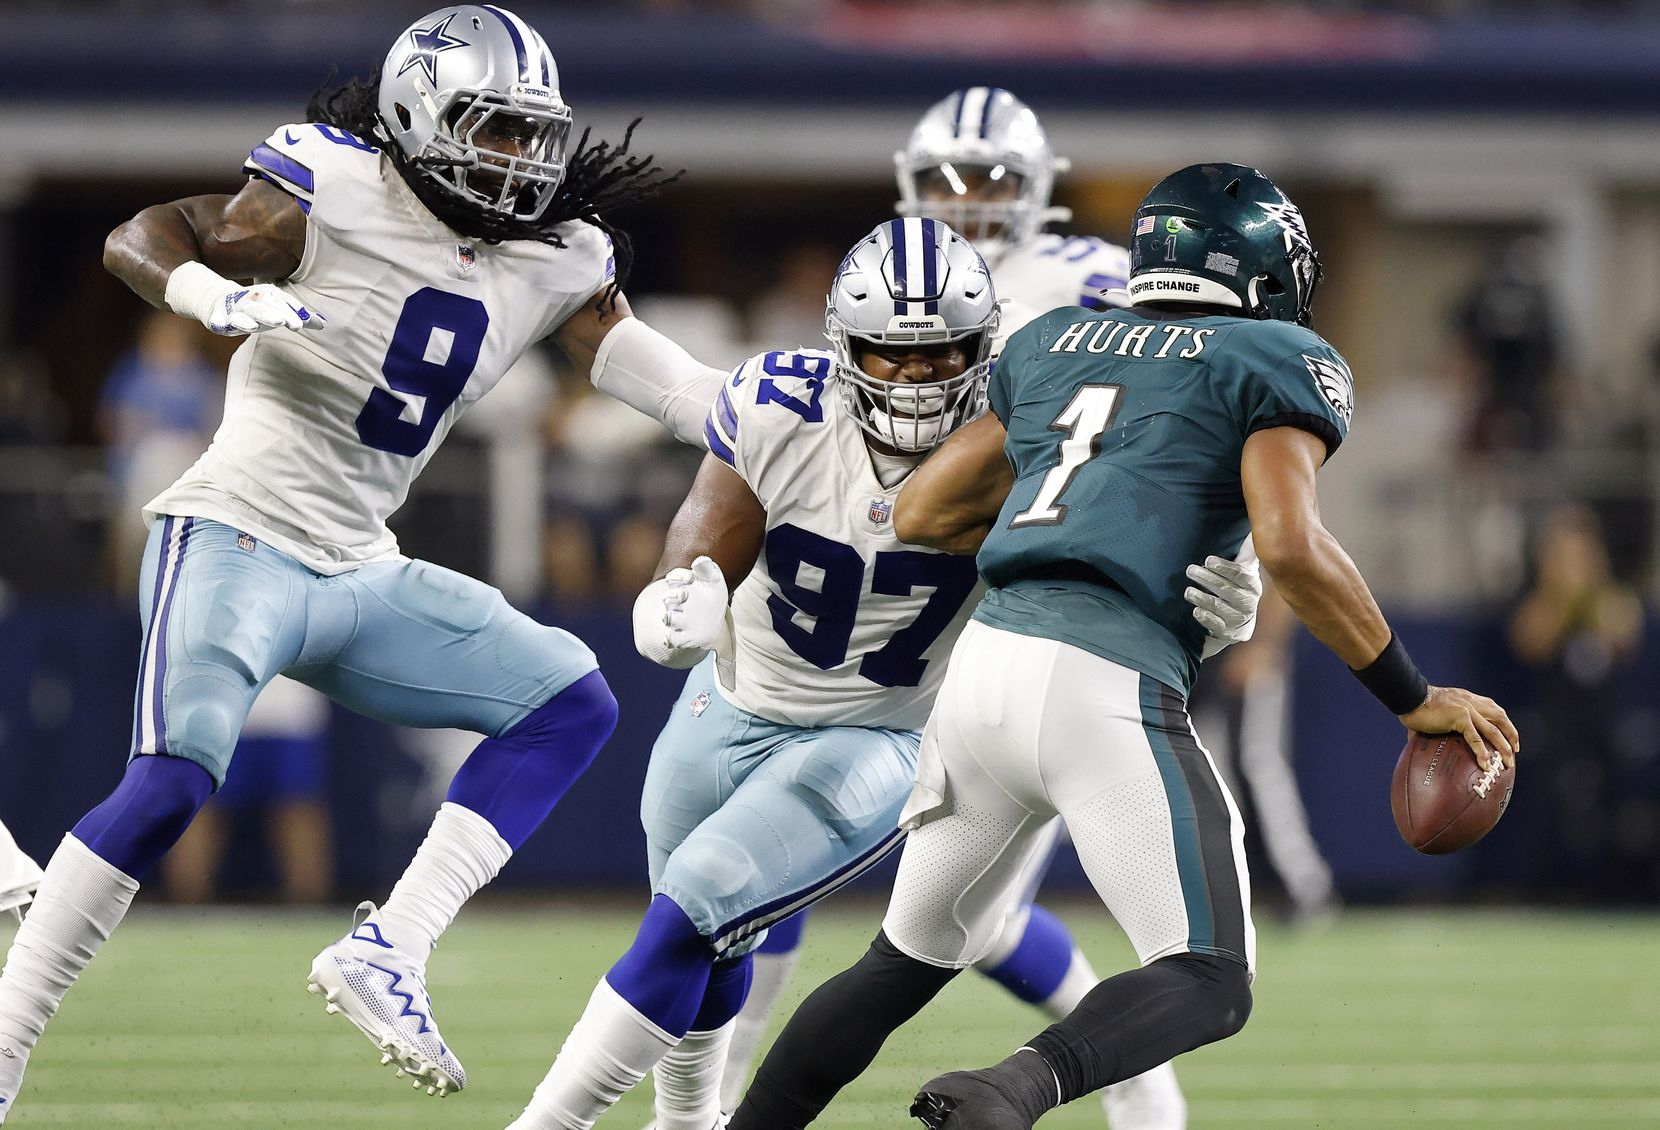 Dallas Cowboys defensive tackle Osa Odighizuwa (97) wraps up Philadelphia Eagles quarterback Jalen Hurts (1) for a fourth quarter sack at AT&T Stadium in Arlington, Monday, September 27, 2021. Middle linebacker Jaylon Smith (9) joined in on the defensive play.